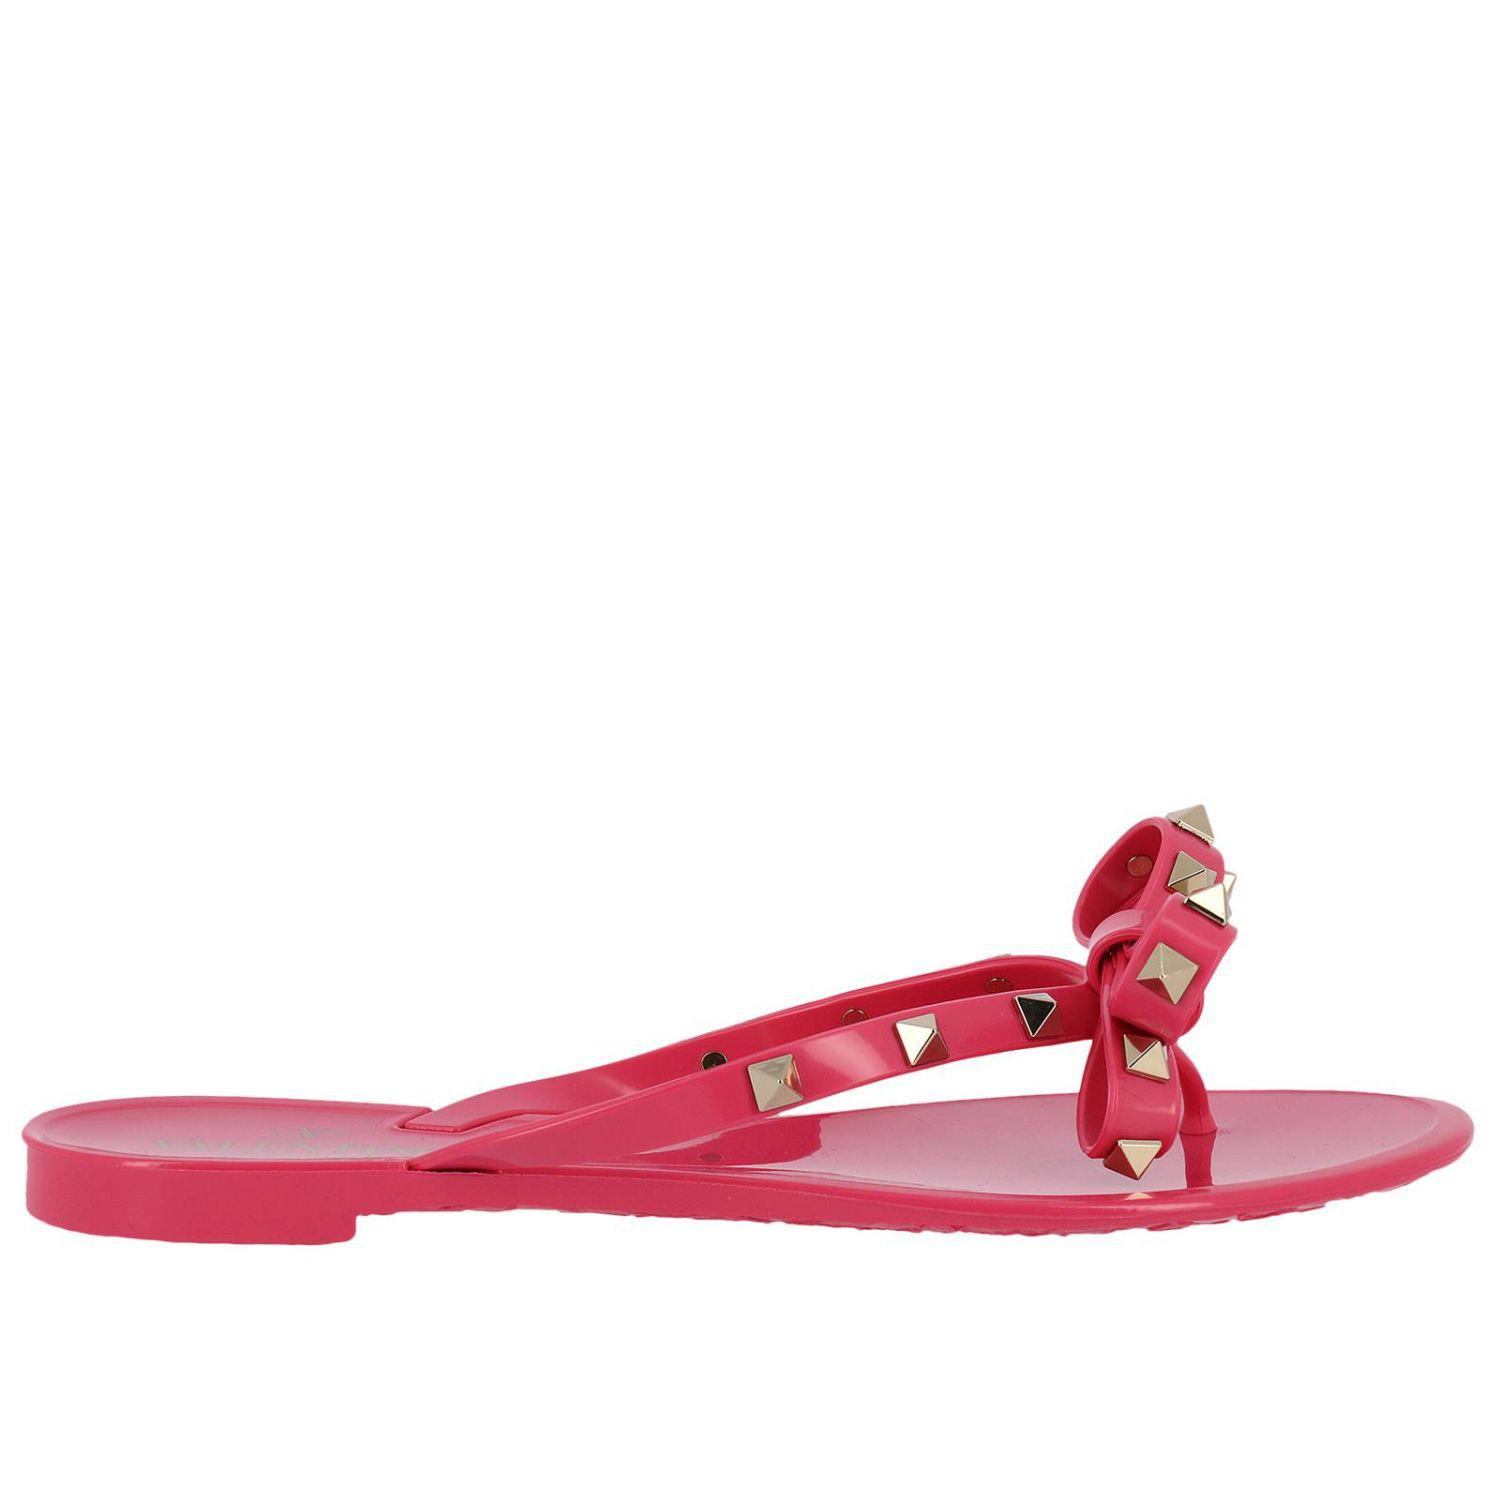 Valentino Flat Sandals Valentino Rockstud Flip Flop Sandals In Pvc With Maxi Bow Cheap Sale How Much Get To Buy UzxGuTeus